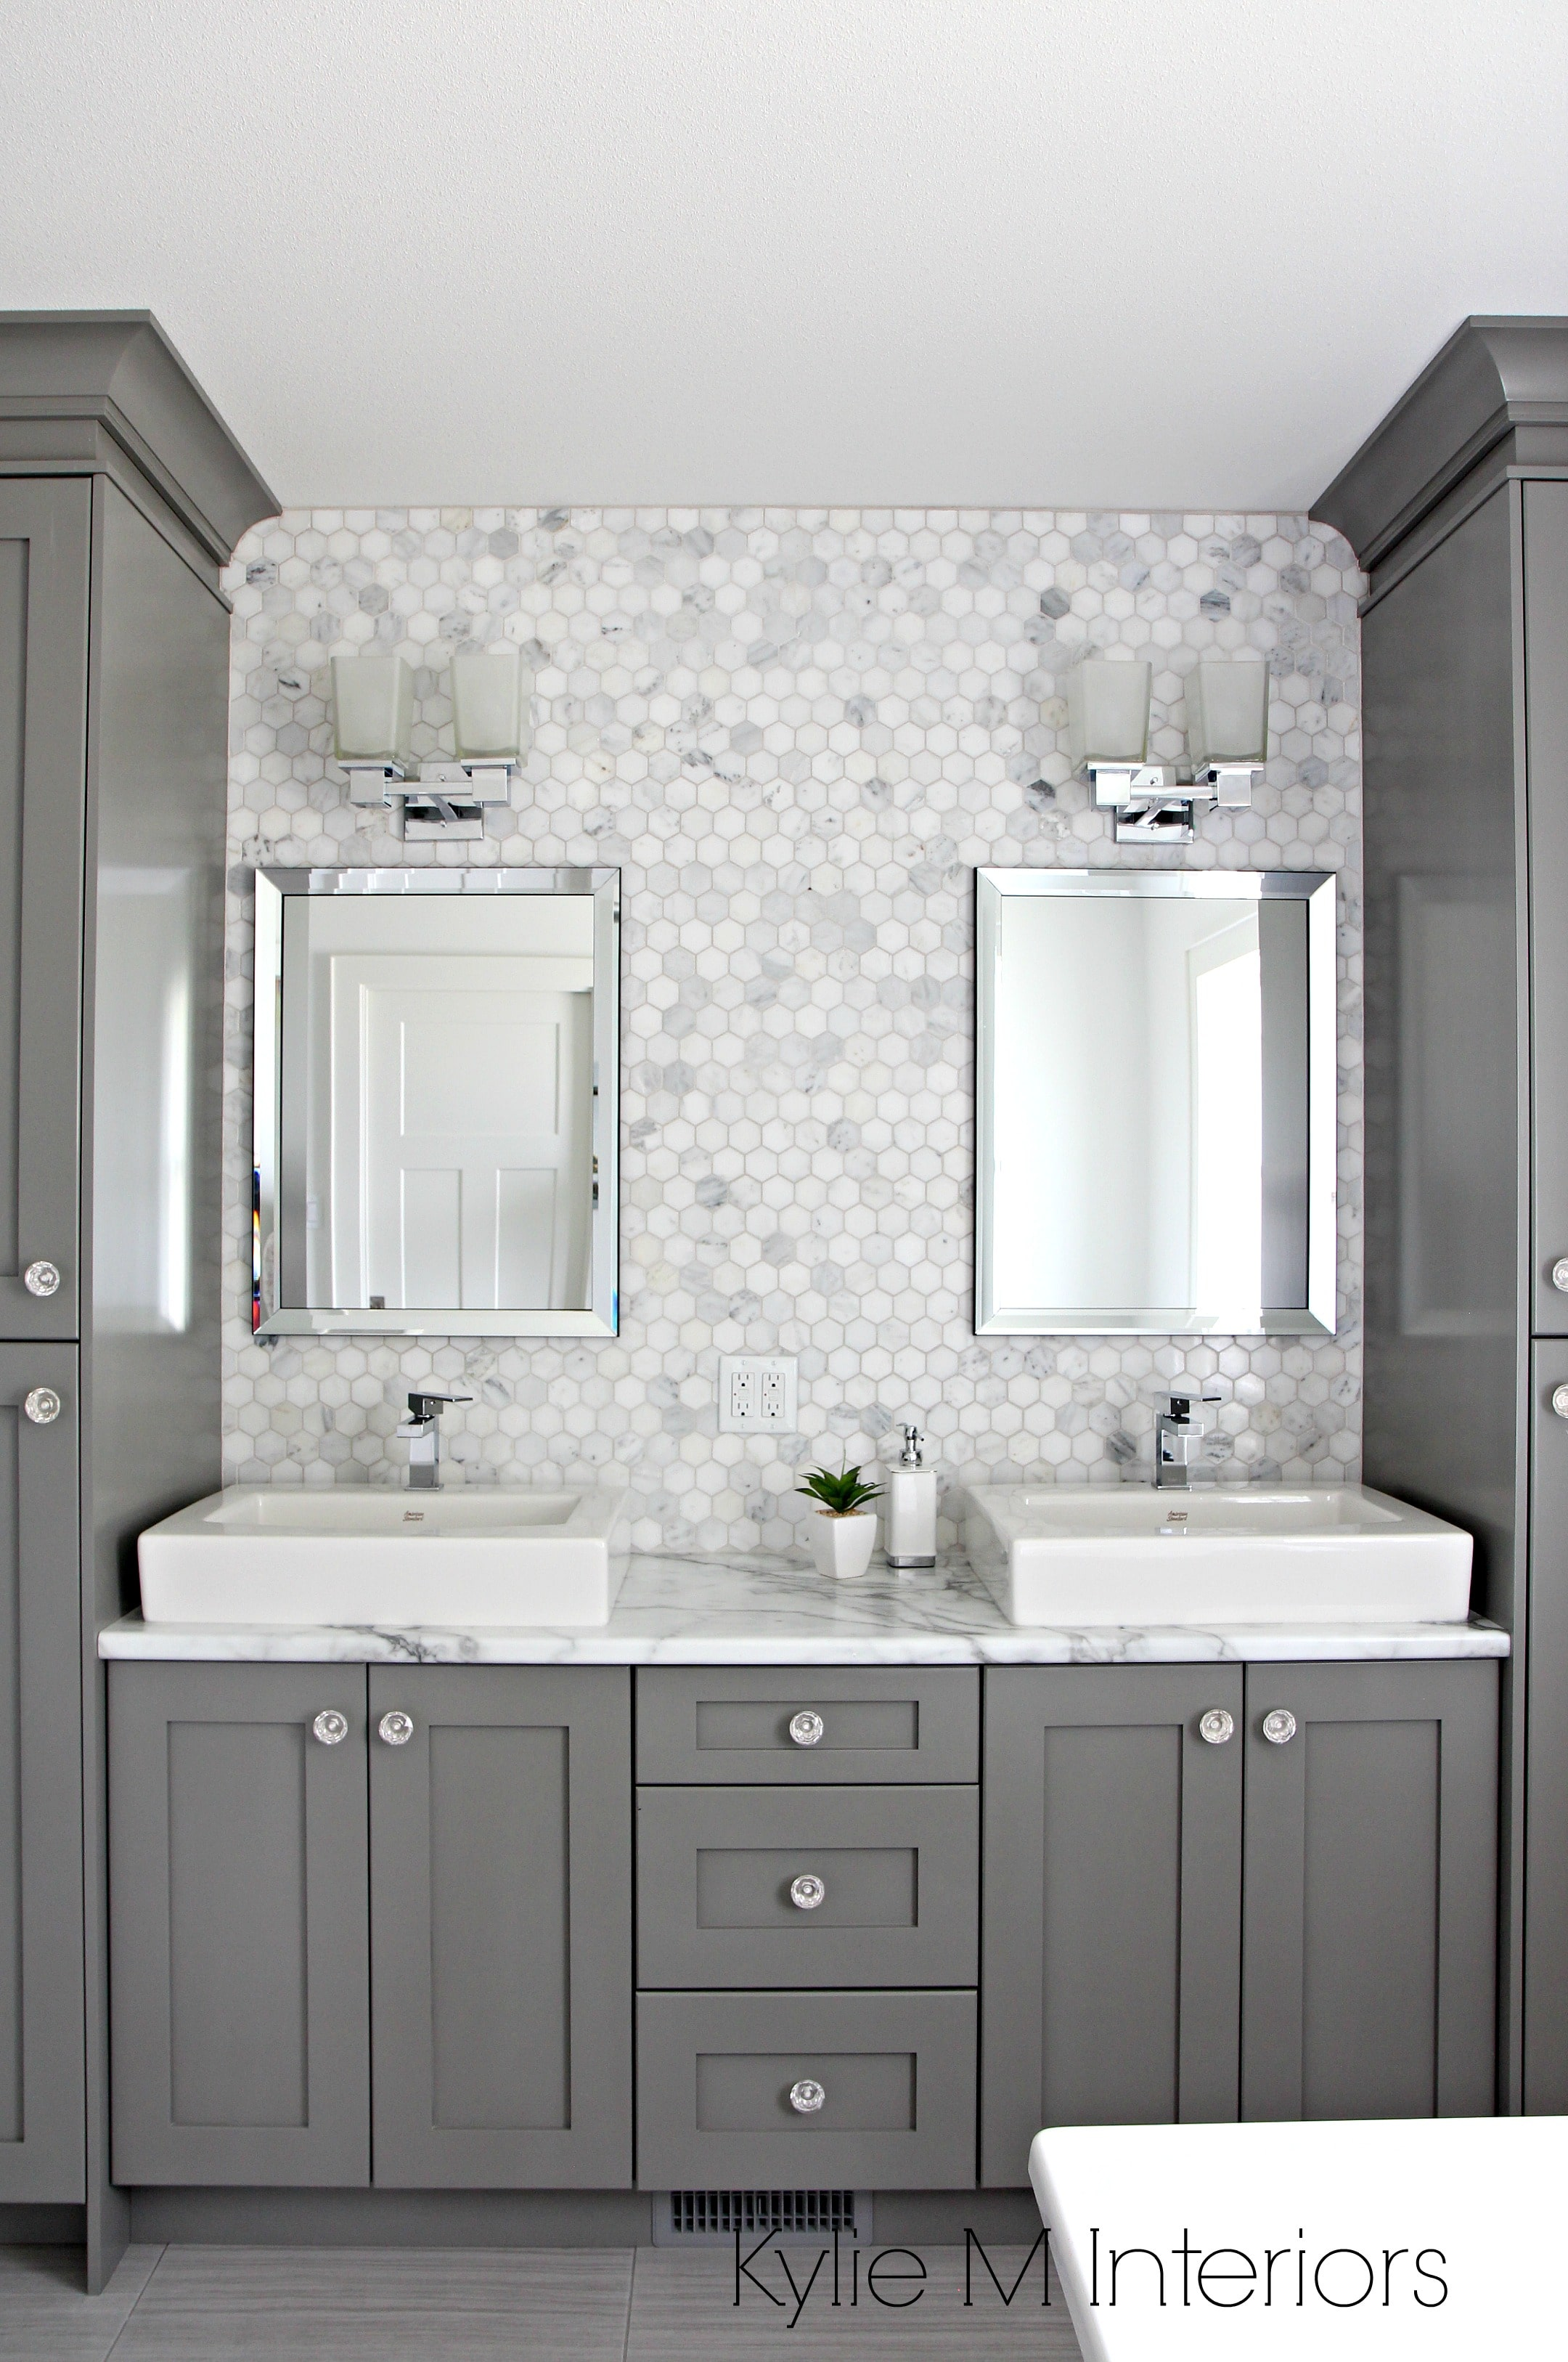 Double Vanity In Bathroom Painted Benjamin Moore Chelsea Gray Hexagon Mosaic Tile Backsplash Calacatta Marble Countertop By Formica Design By Kylie M Interiors